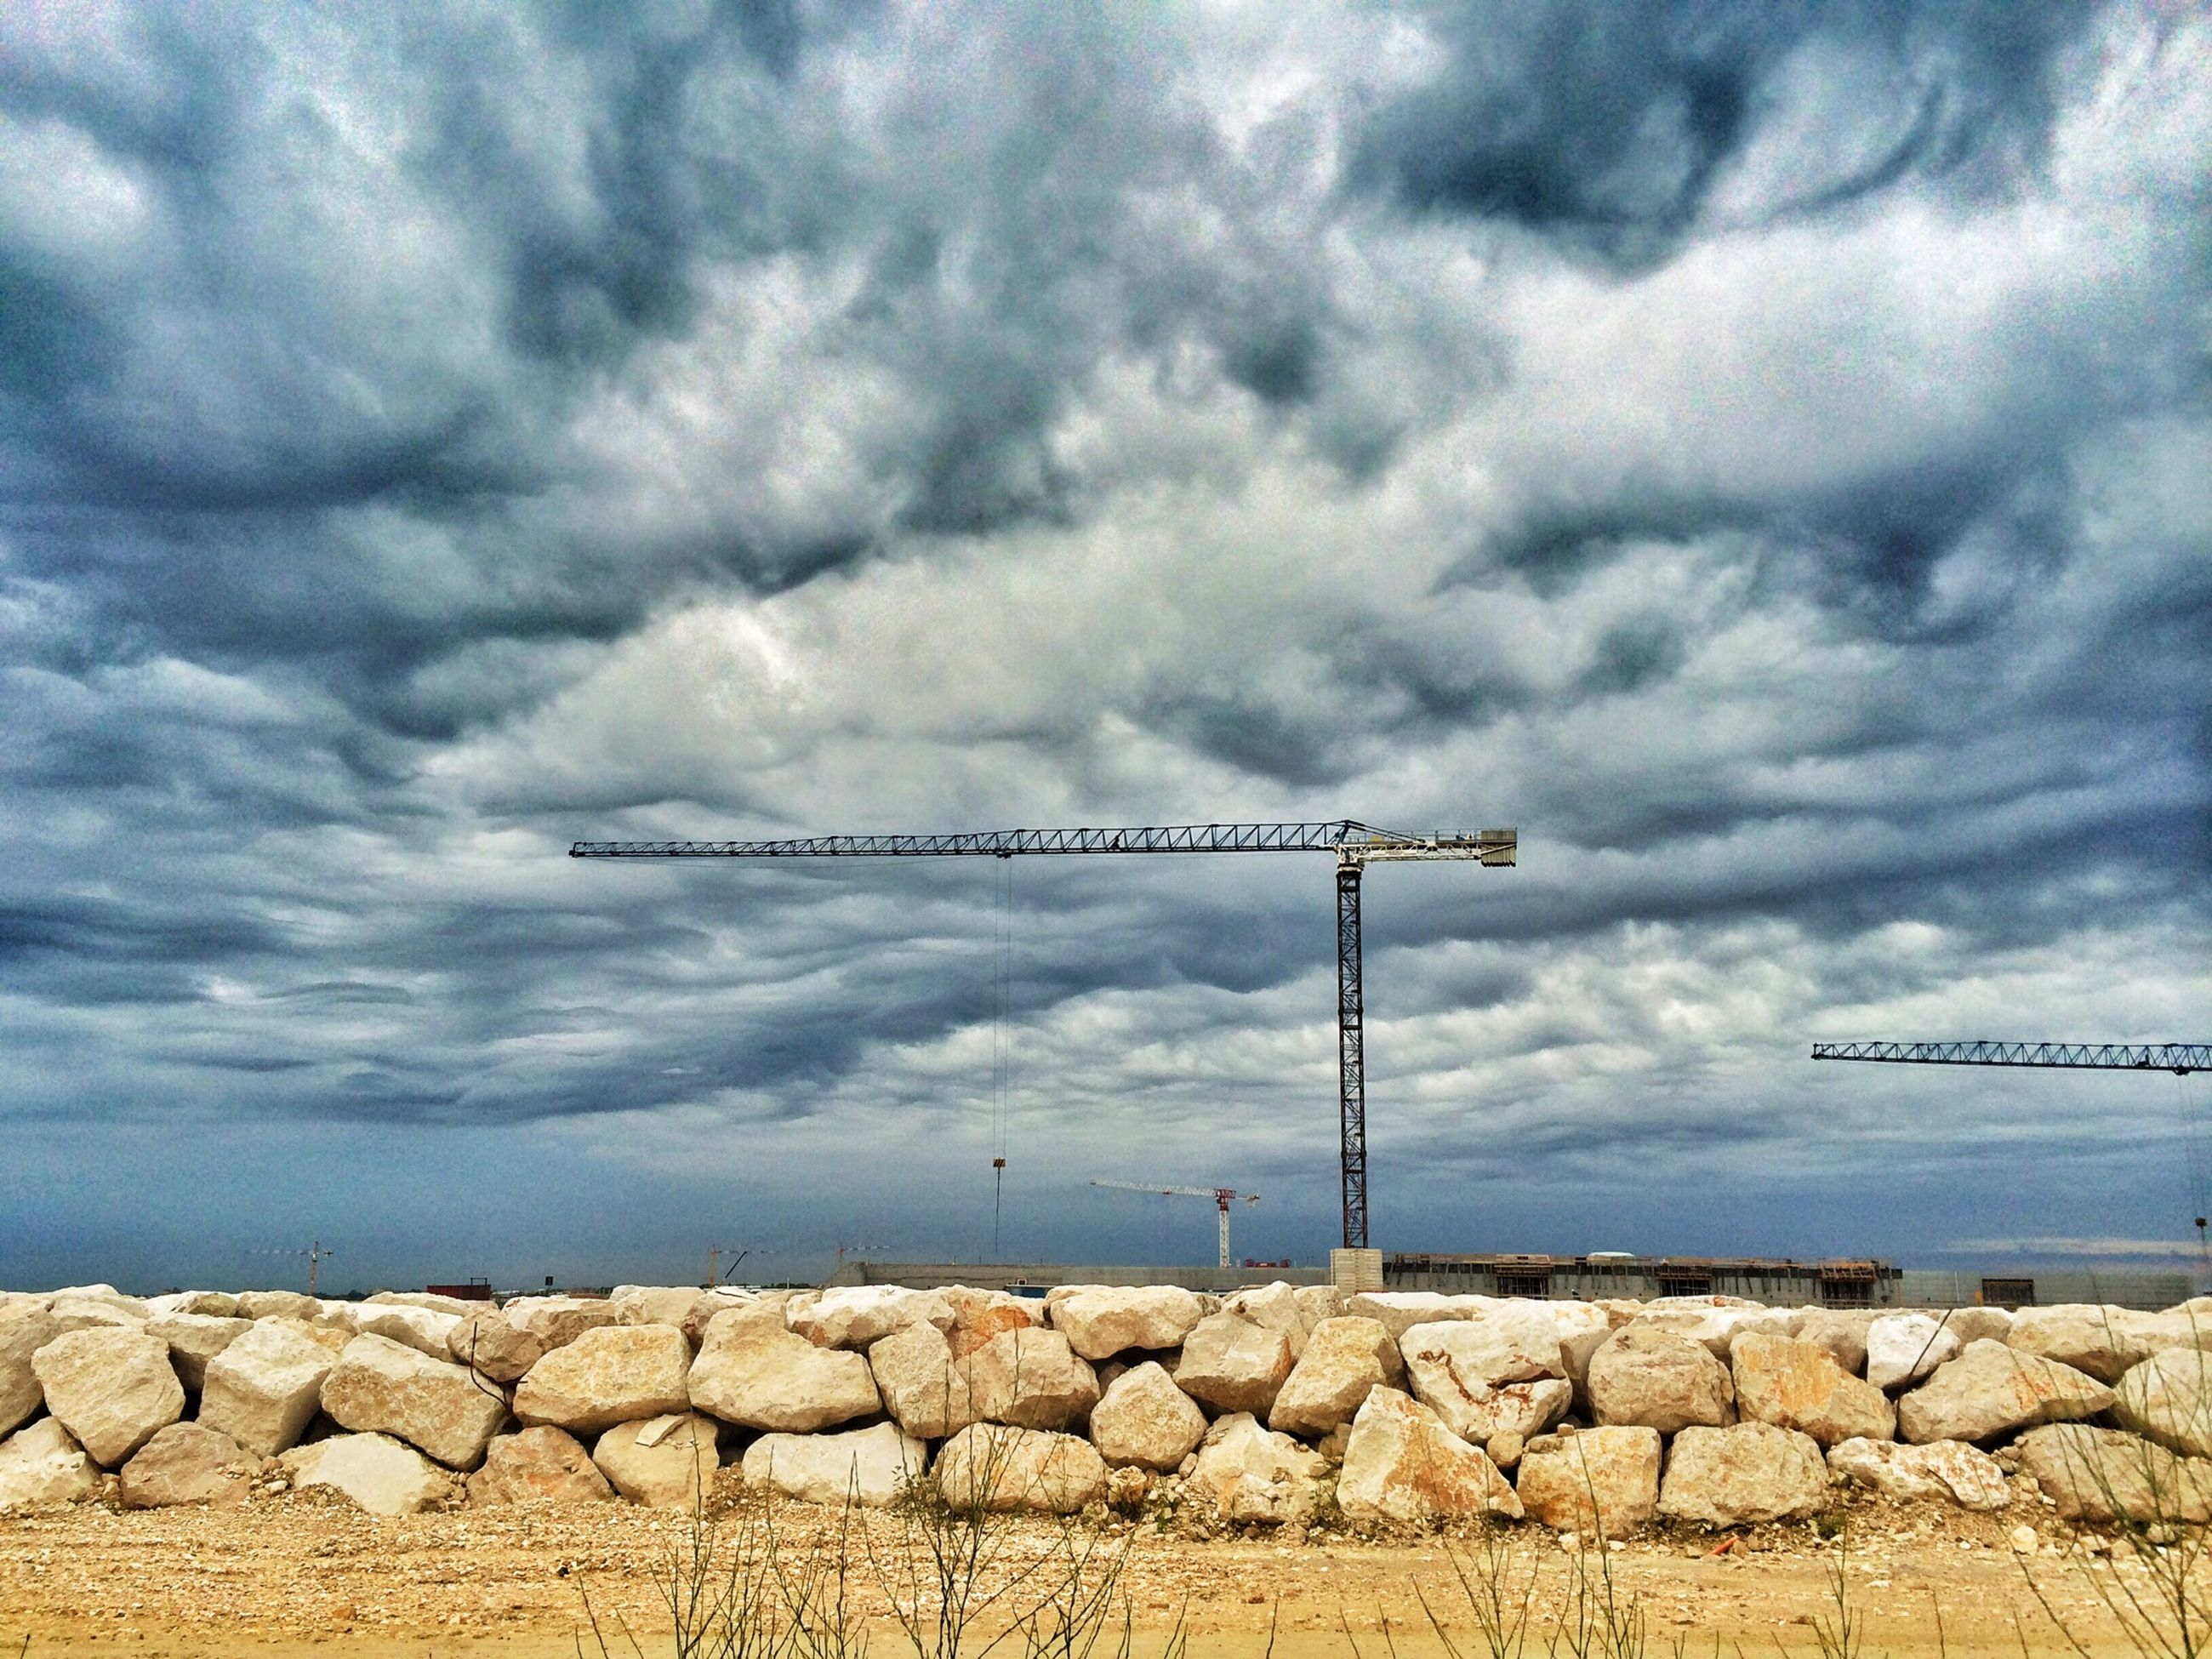 sky, cloud - sky, cloudy, cloud, built structure, sea, fuel and power generation, overcast, architecture, environmental conservation, wind turbine, day, building exterior, alternative energy, low angle view, wind power, nature, outdoors, no people, weather